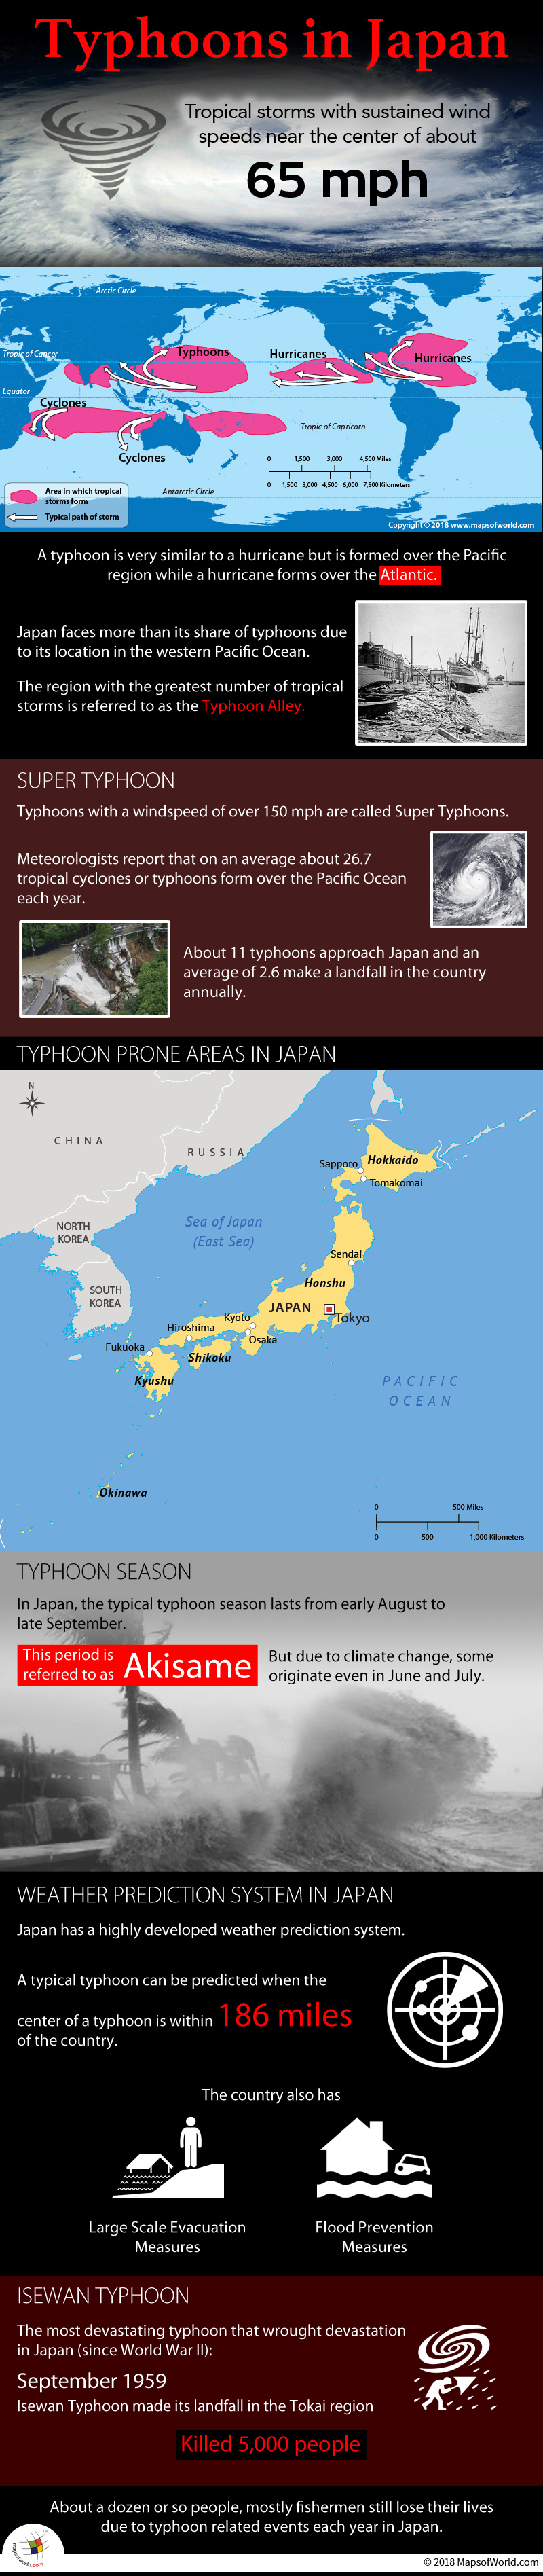 Infographic elaborating reason why typhoons occur in Japan.